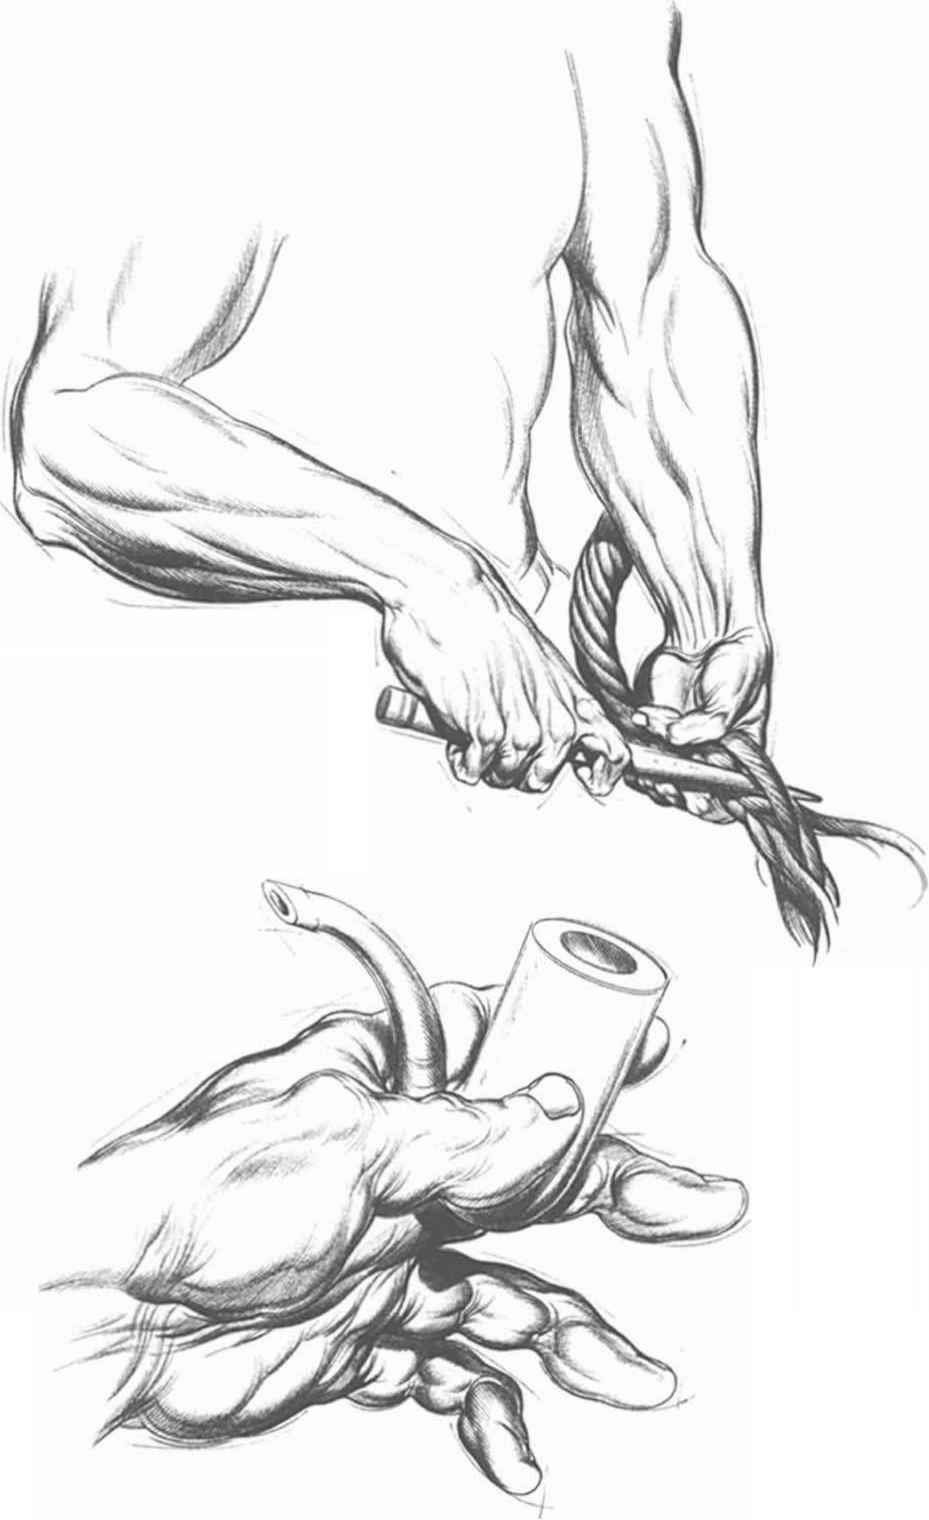 hand actions with an inflexible object drawing hands